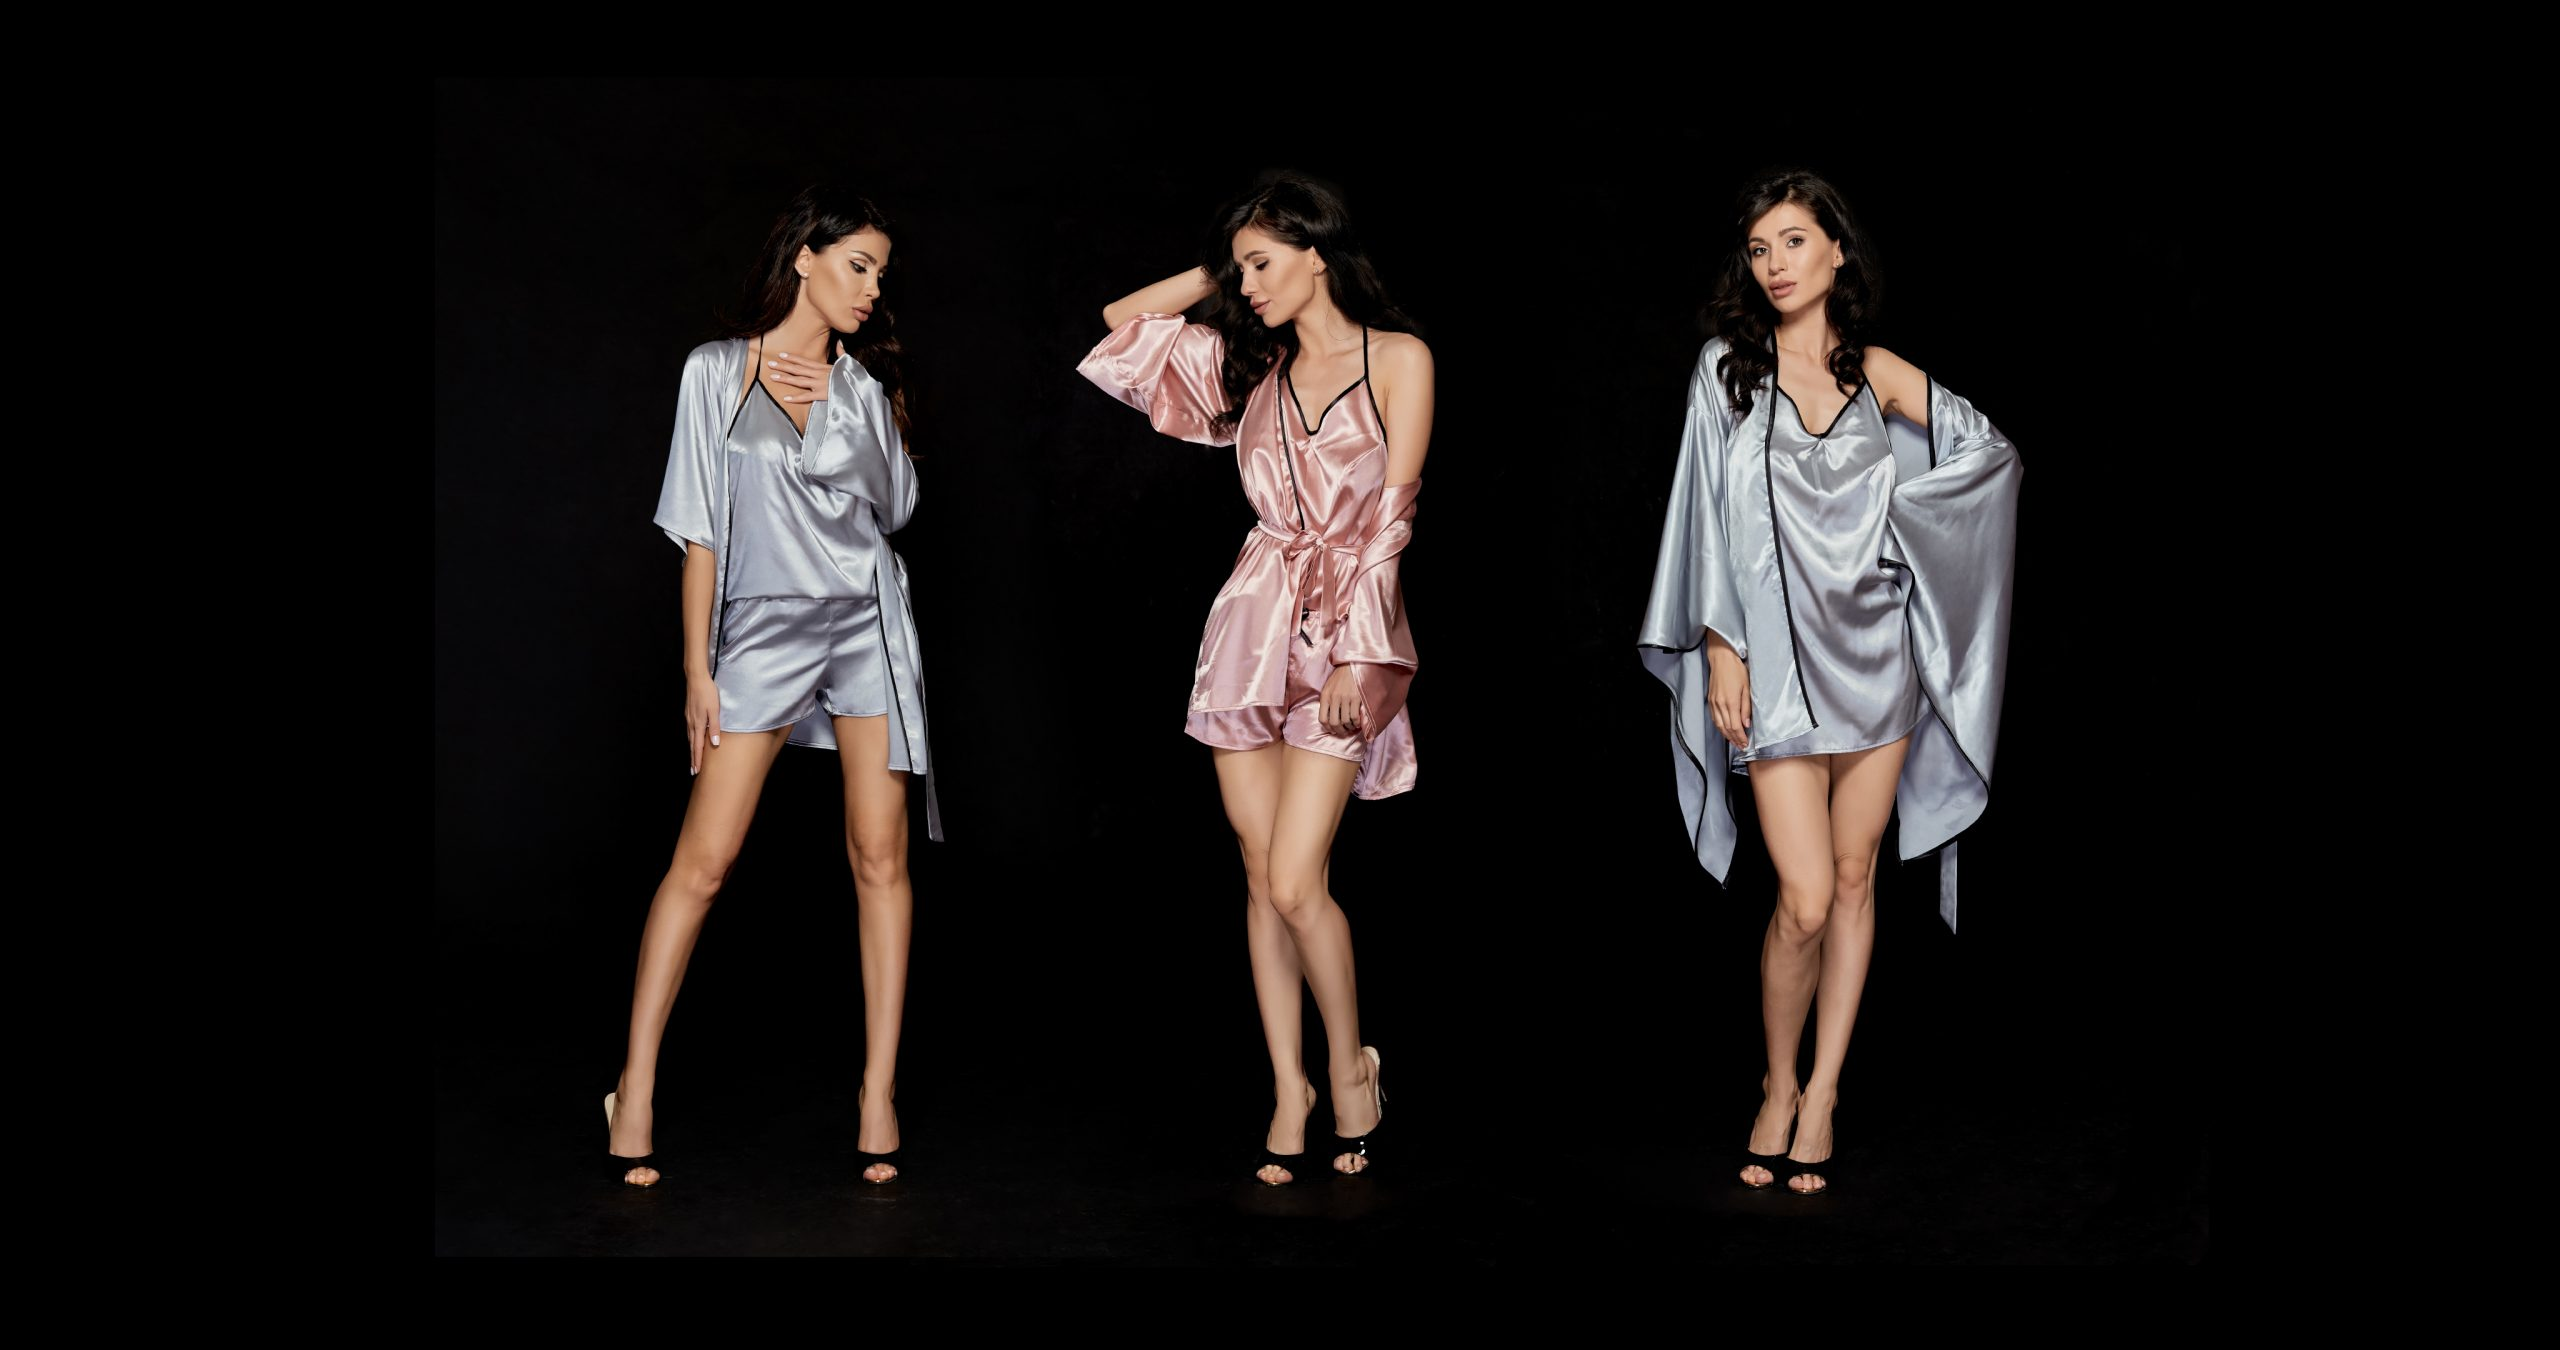 fashion-behind-the-shoot-luxury-sleepwear-product-catalog-advertising-photography